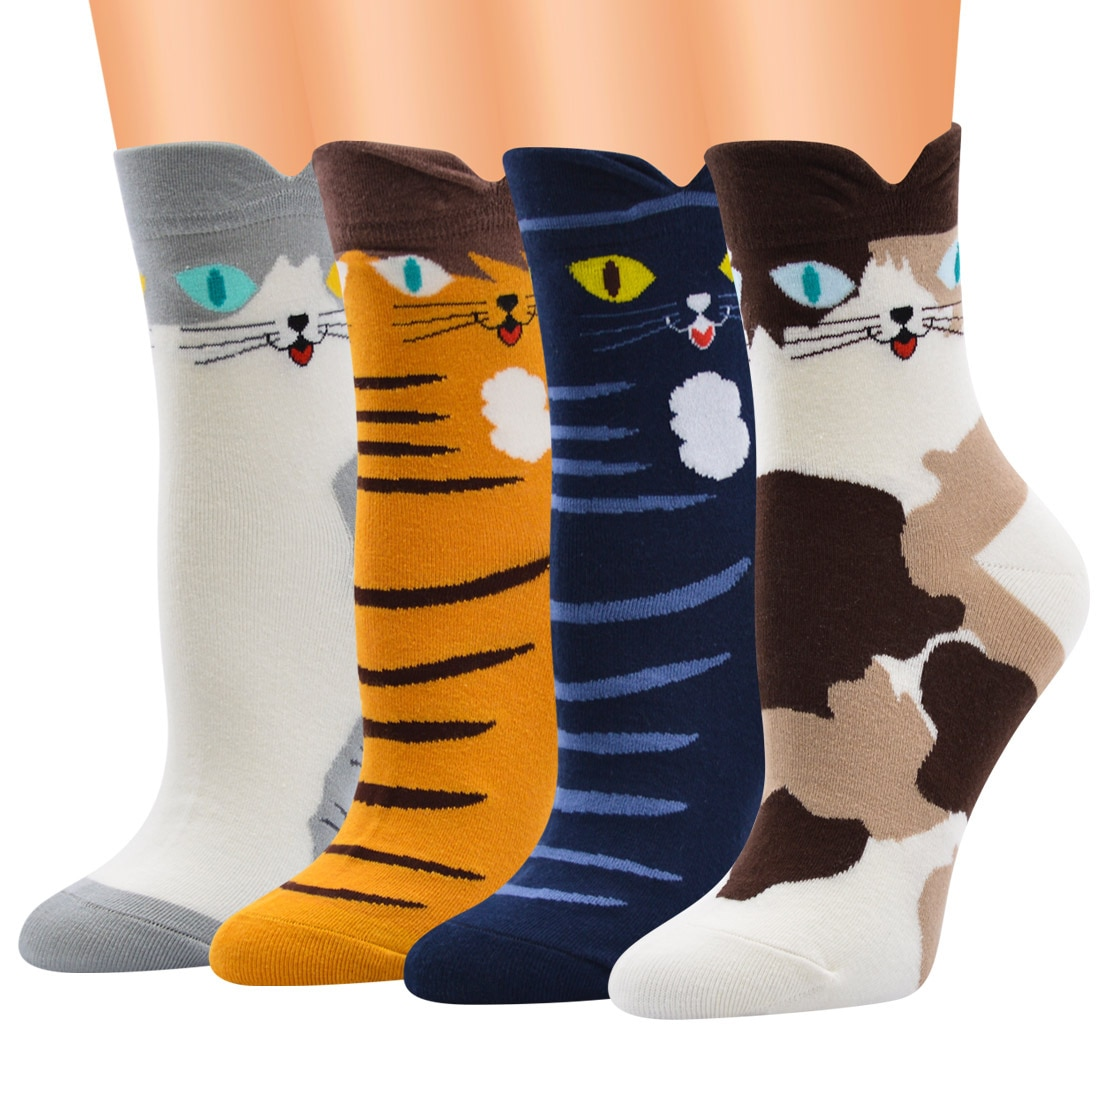 Women Latest Fashion Curved V Shape Cuff Cute Cat Print Cotton Socks For Teenage Girls